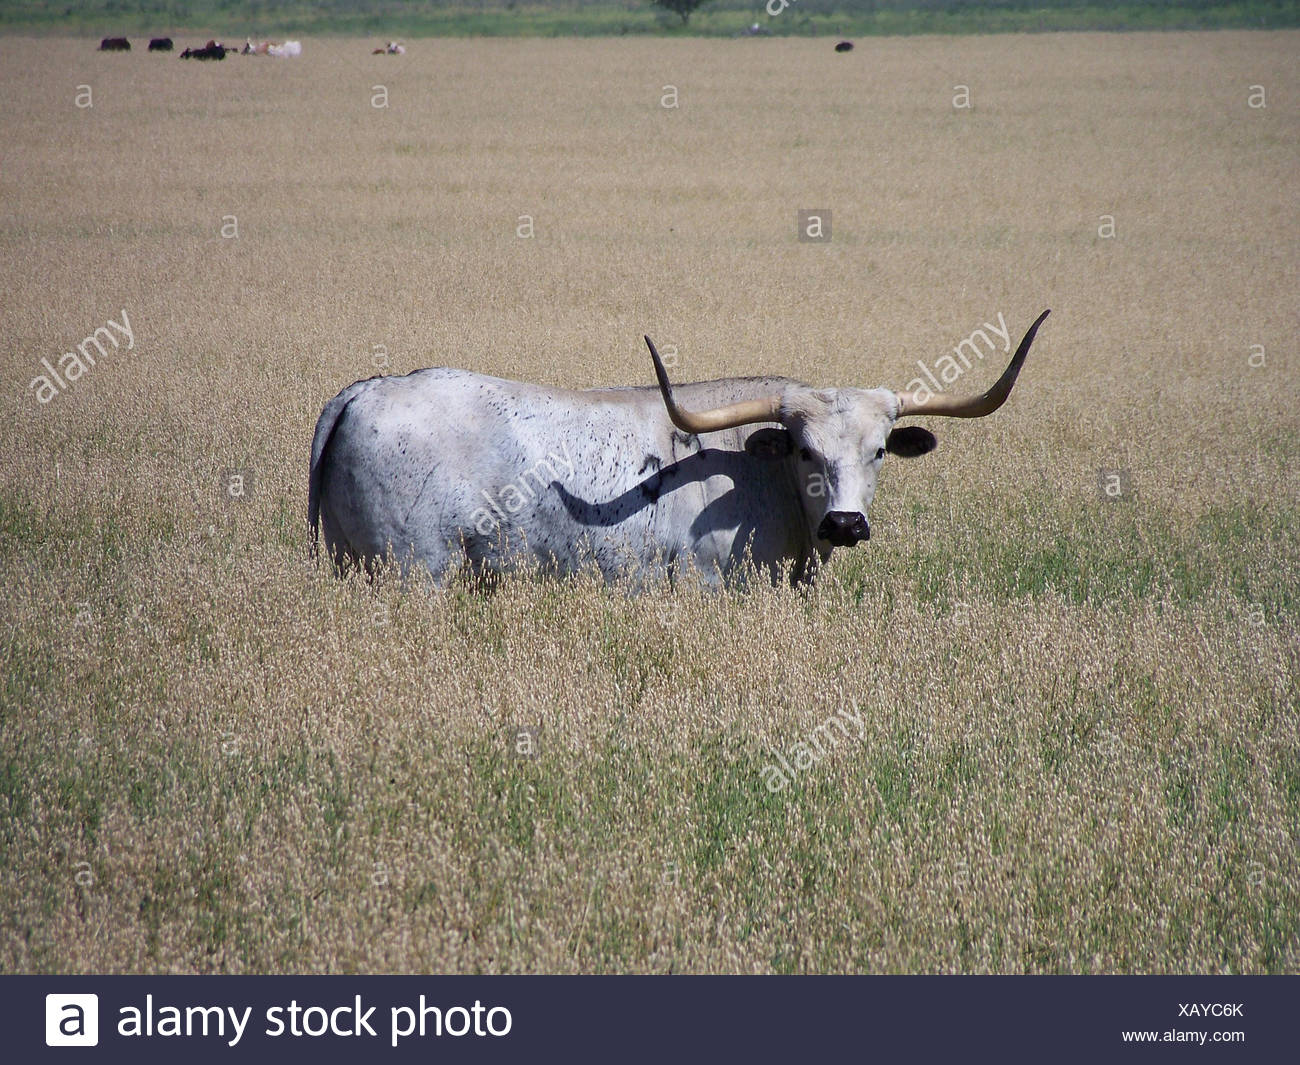 USA, Texas, Dimmit County, Texas Longhorn - Stock Image